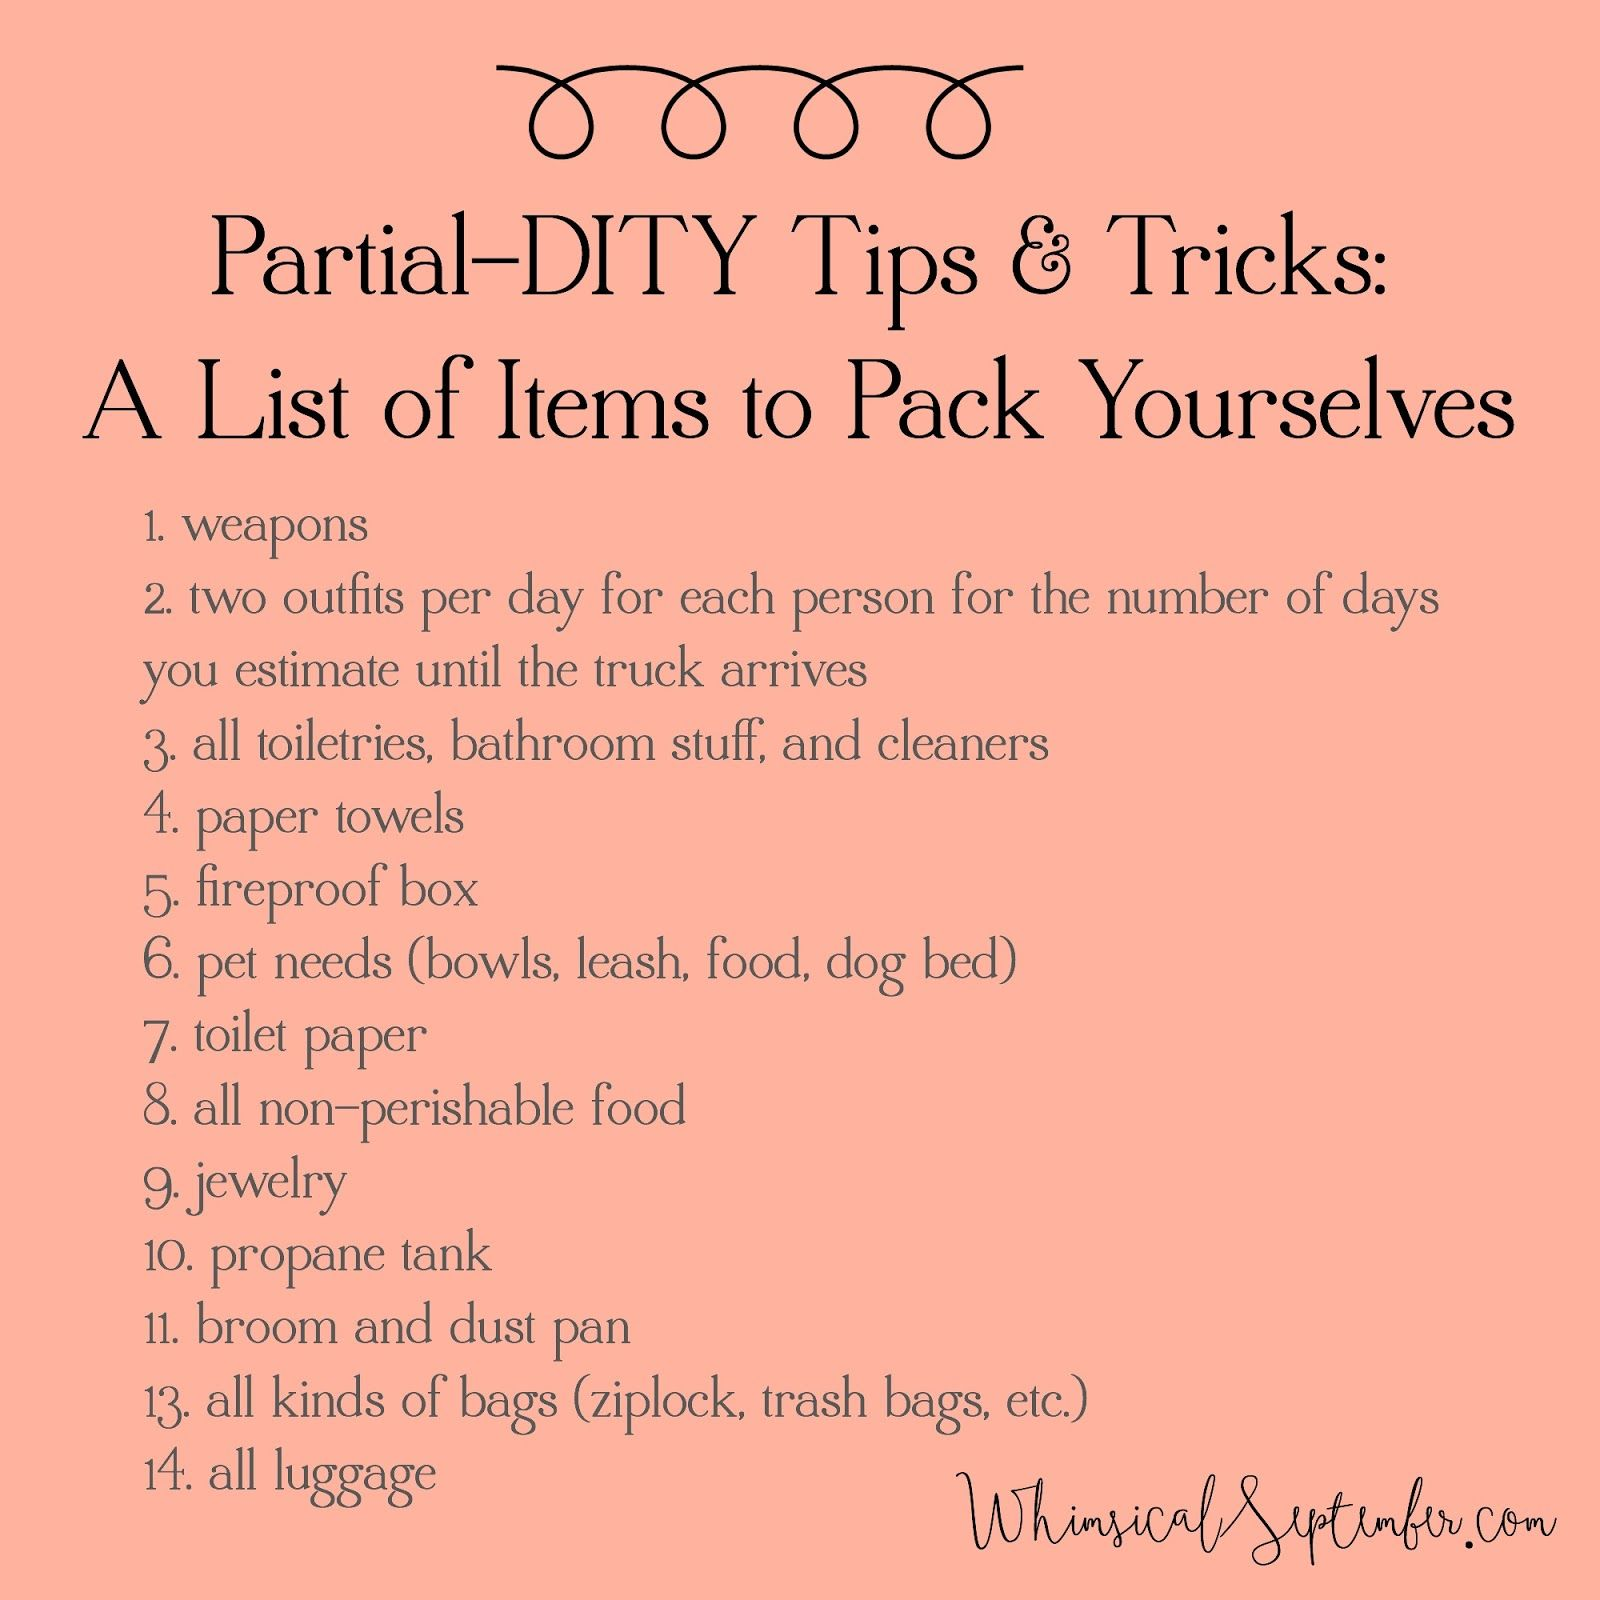 10 Tips And Tricks For Your Next Partial DITY Move